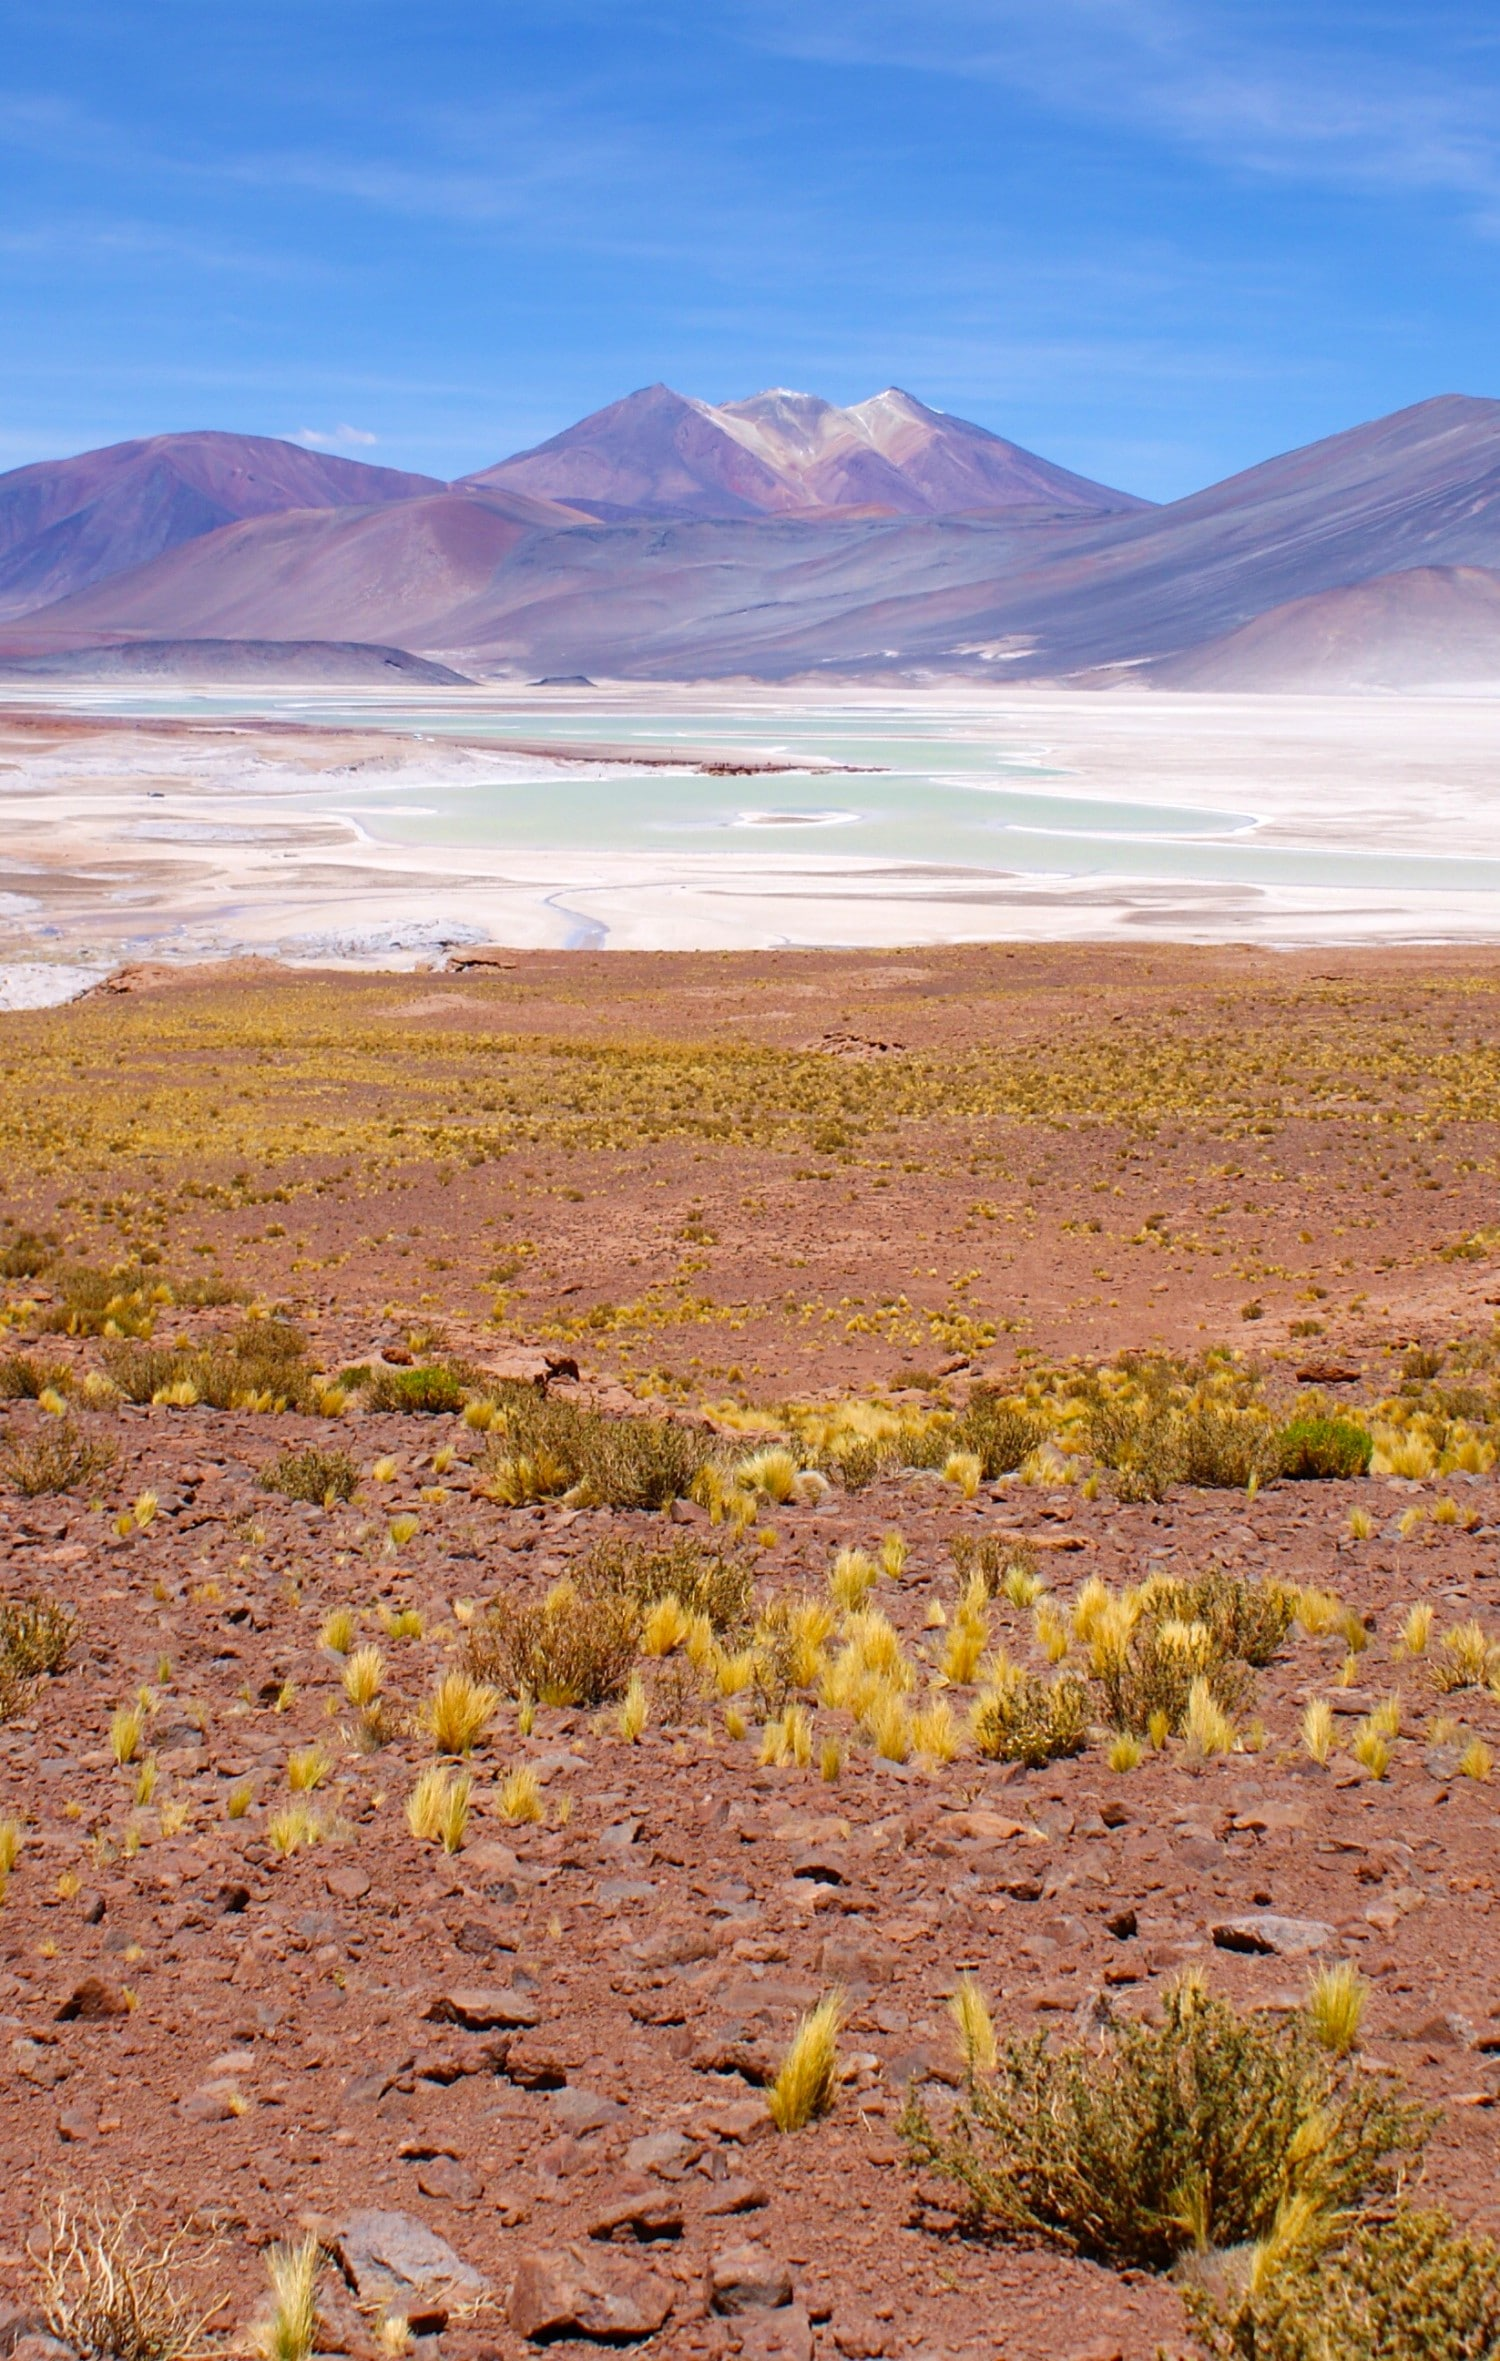 South America Travel Itinerary - Dont forget the Atacama Desert